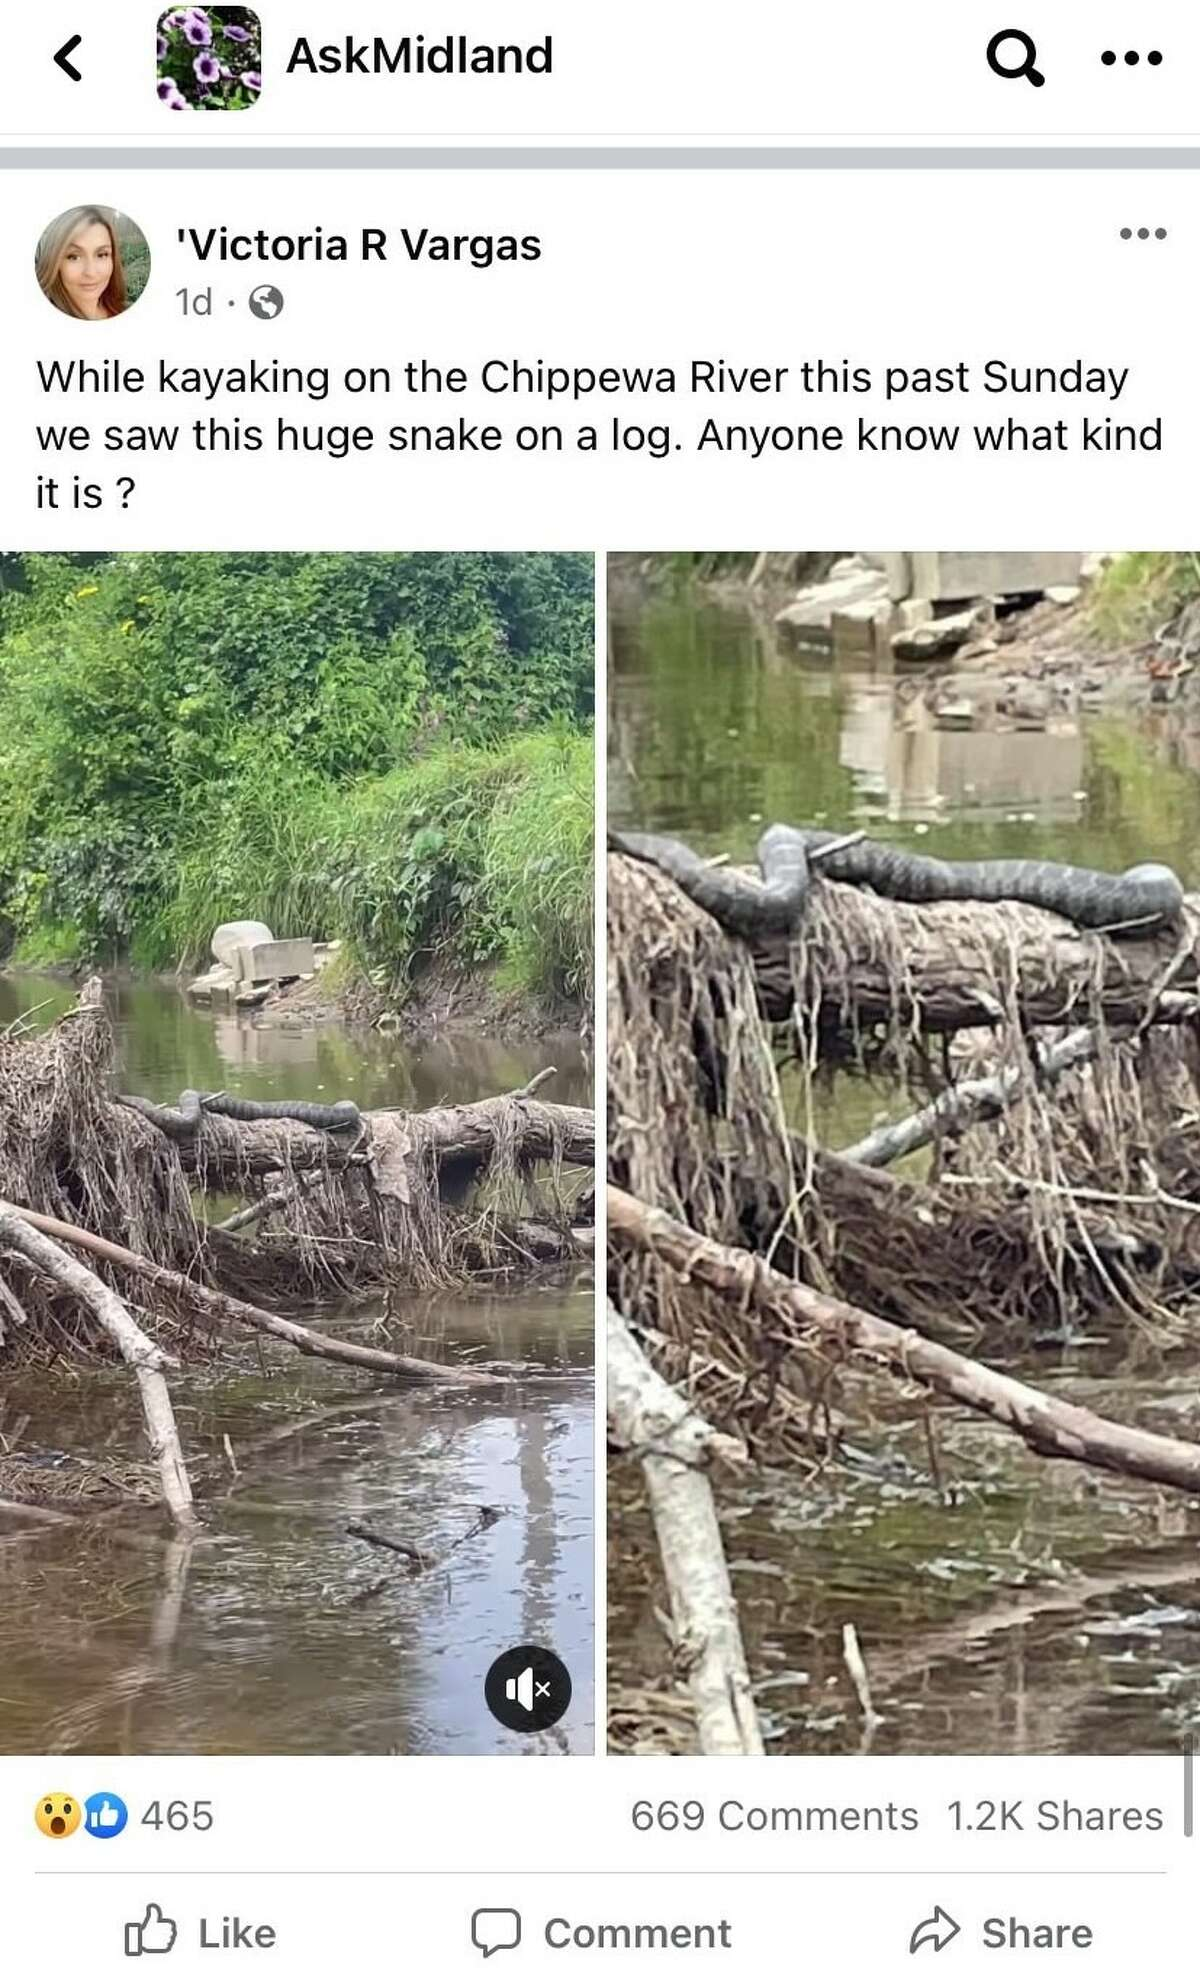 Victoria Vargas' original post on AskMidland, a Facebook group for Midland residents, shows the northern water snake in its natural habitat.